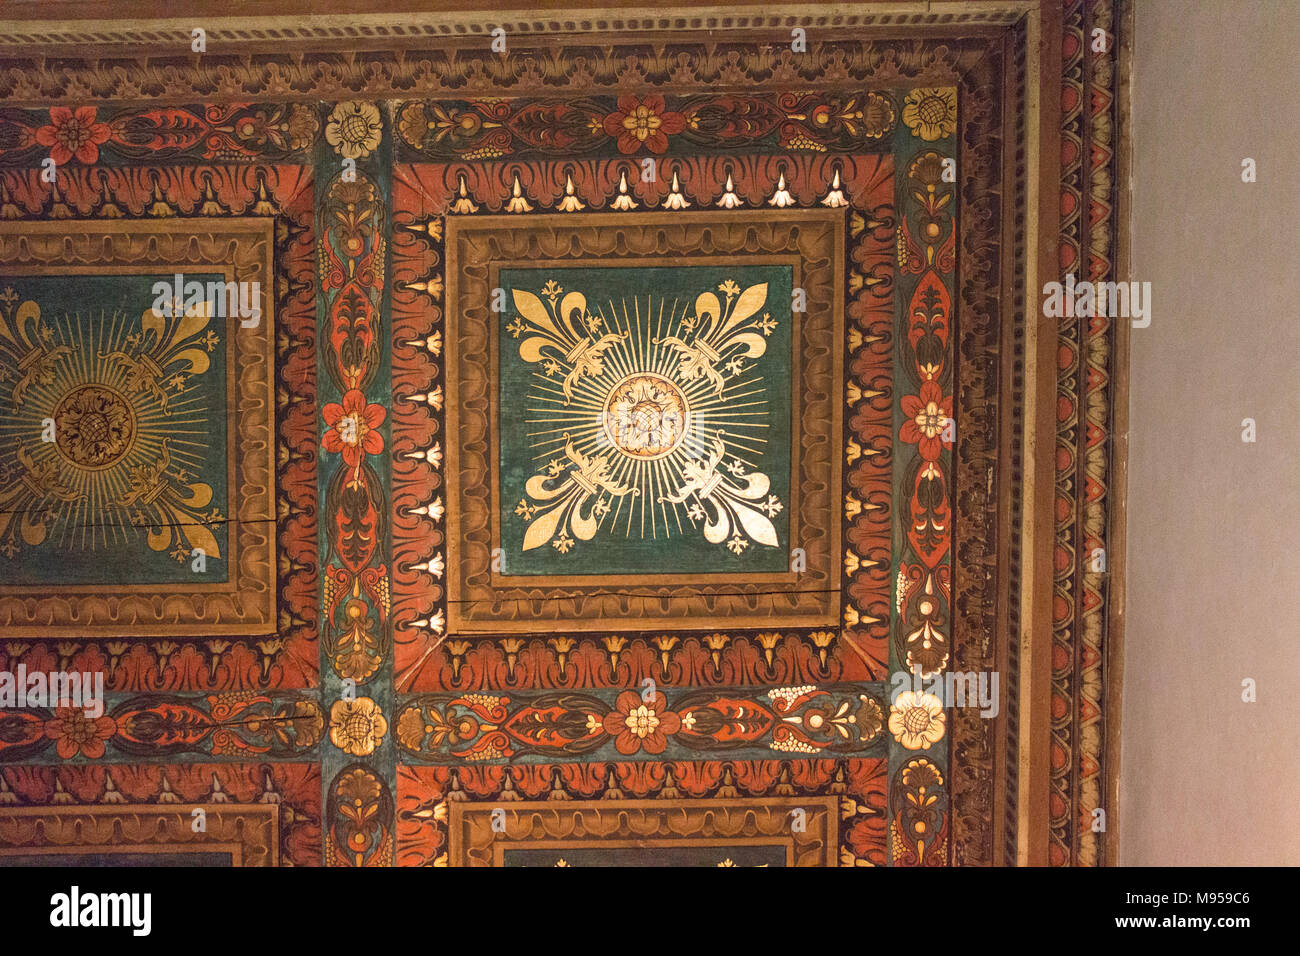 Italy, Florence - May 18 2017: the view of the painted wooden ceiling fragment inside the medieval Palazzo Vecchio on May 18 2017 in Florence, Italy. Stock Photo